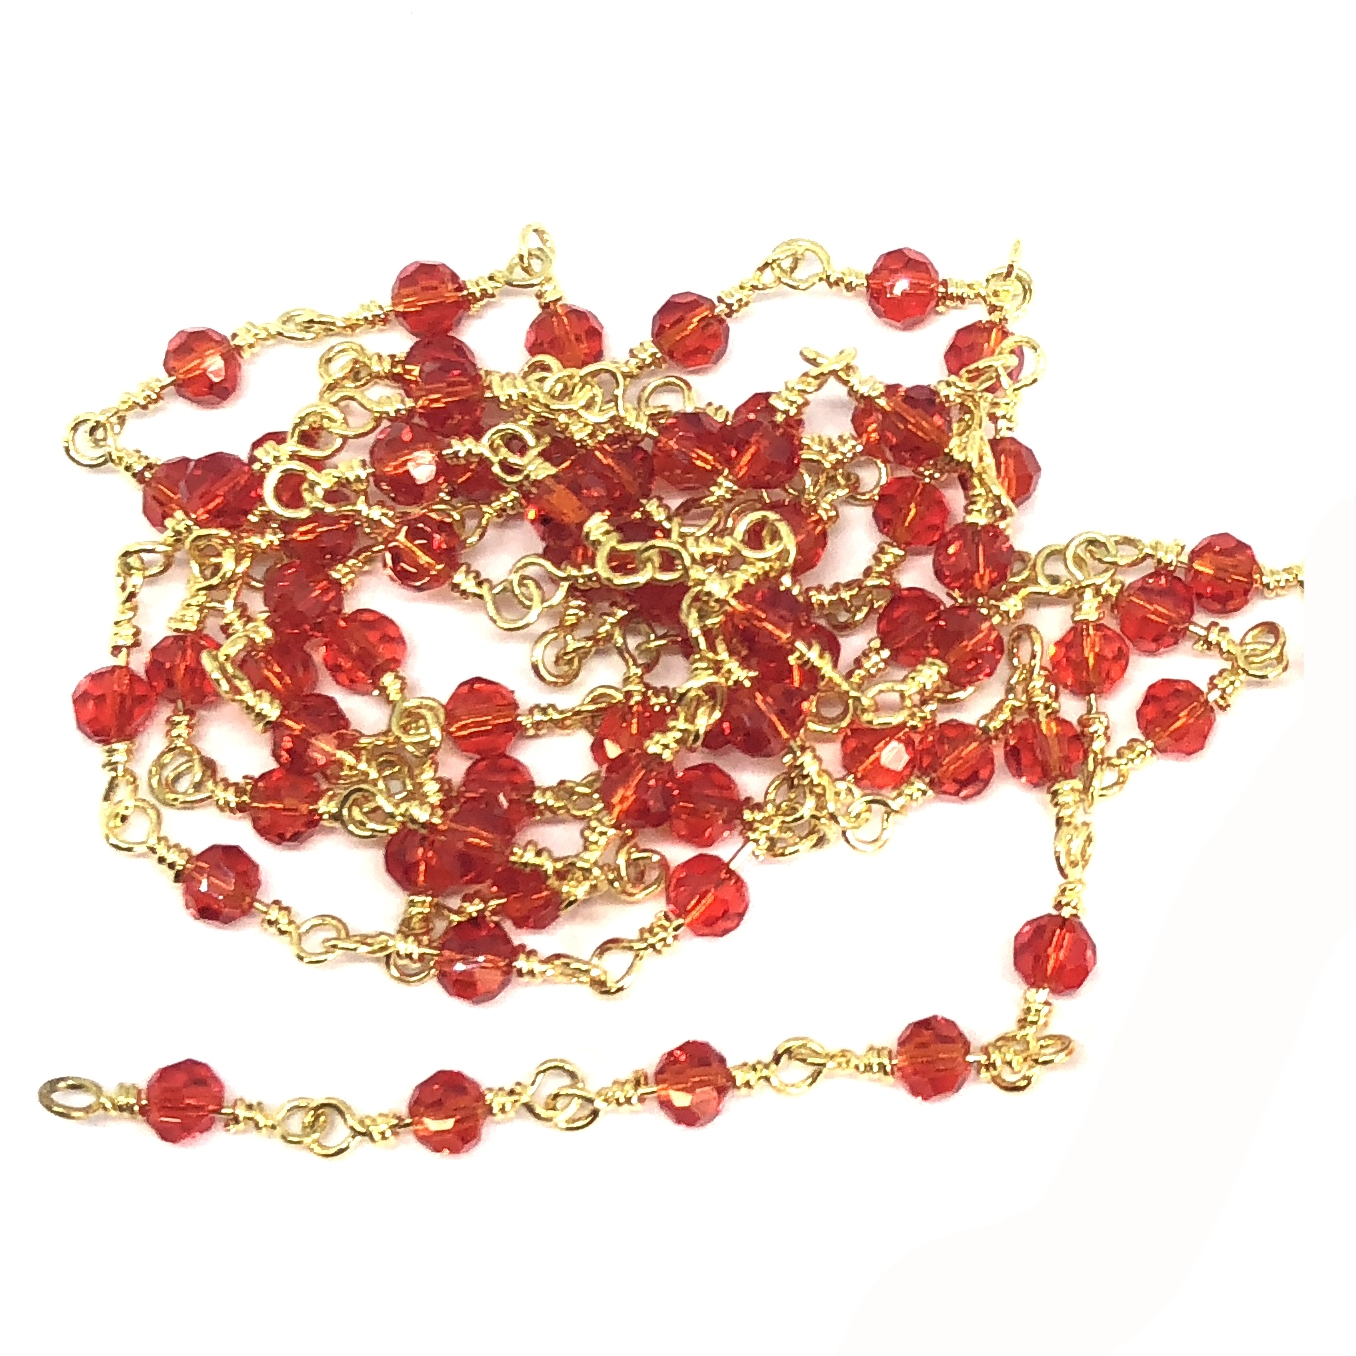 glass bead chain, bead chain, hand wire wrapped chain, gold plate chain, bright red glass beads, jewelry chain, jewelry making supplies, vintage jewelry supplies, bead chain, handmade chain, glass beads, chain, beaded chain, 07834